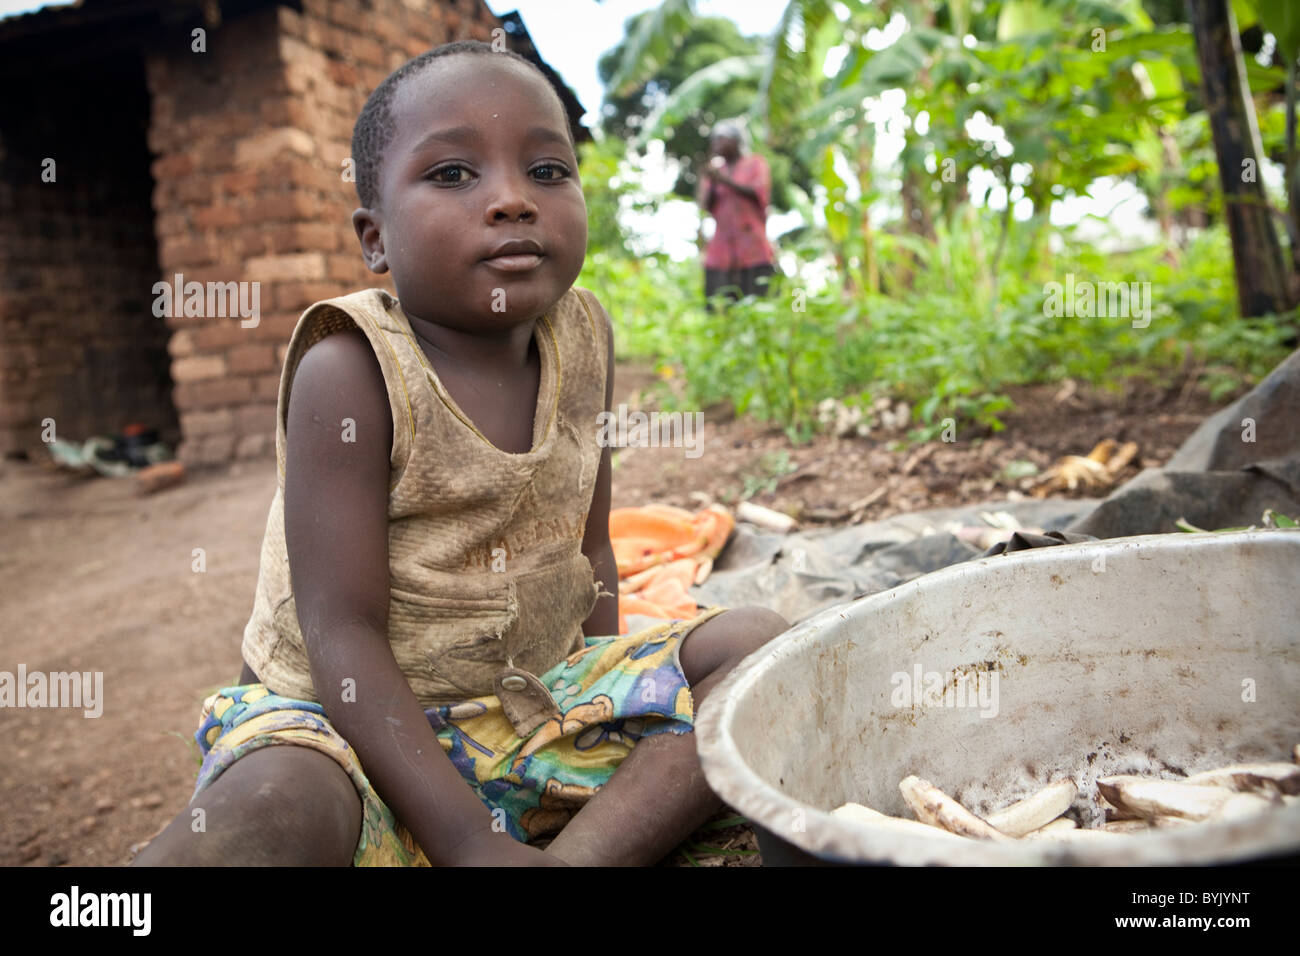 A young boy sits by a cooking pot full of bananas in rural Masaka, Uganda, East Africa. Stock Photo